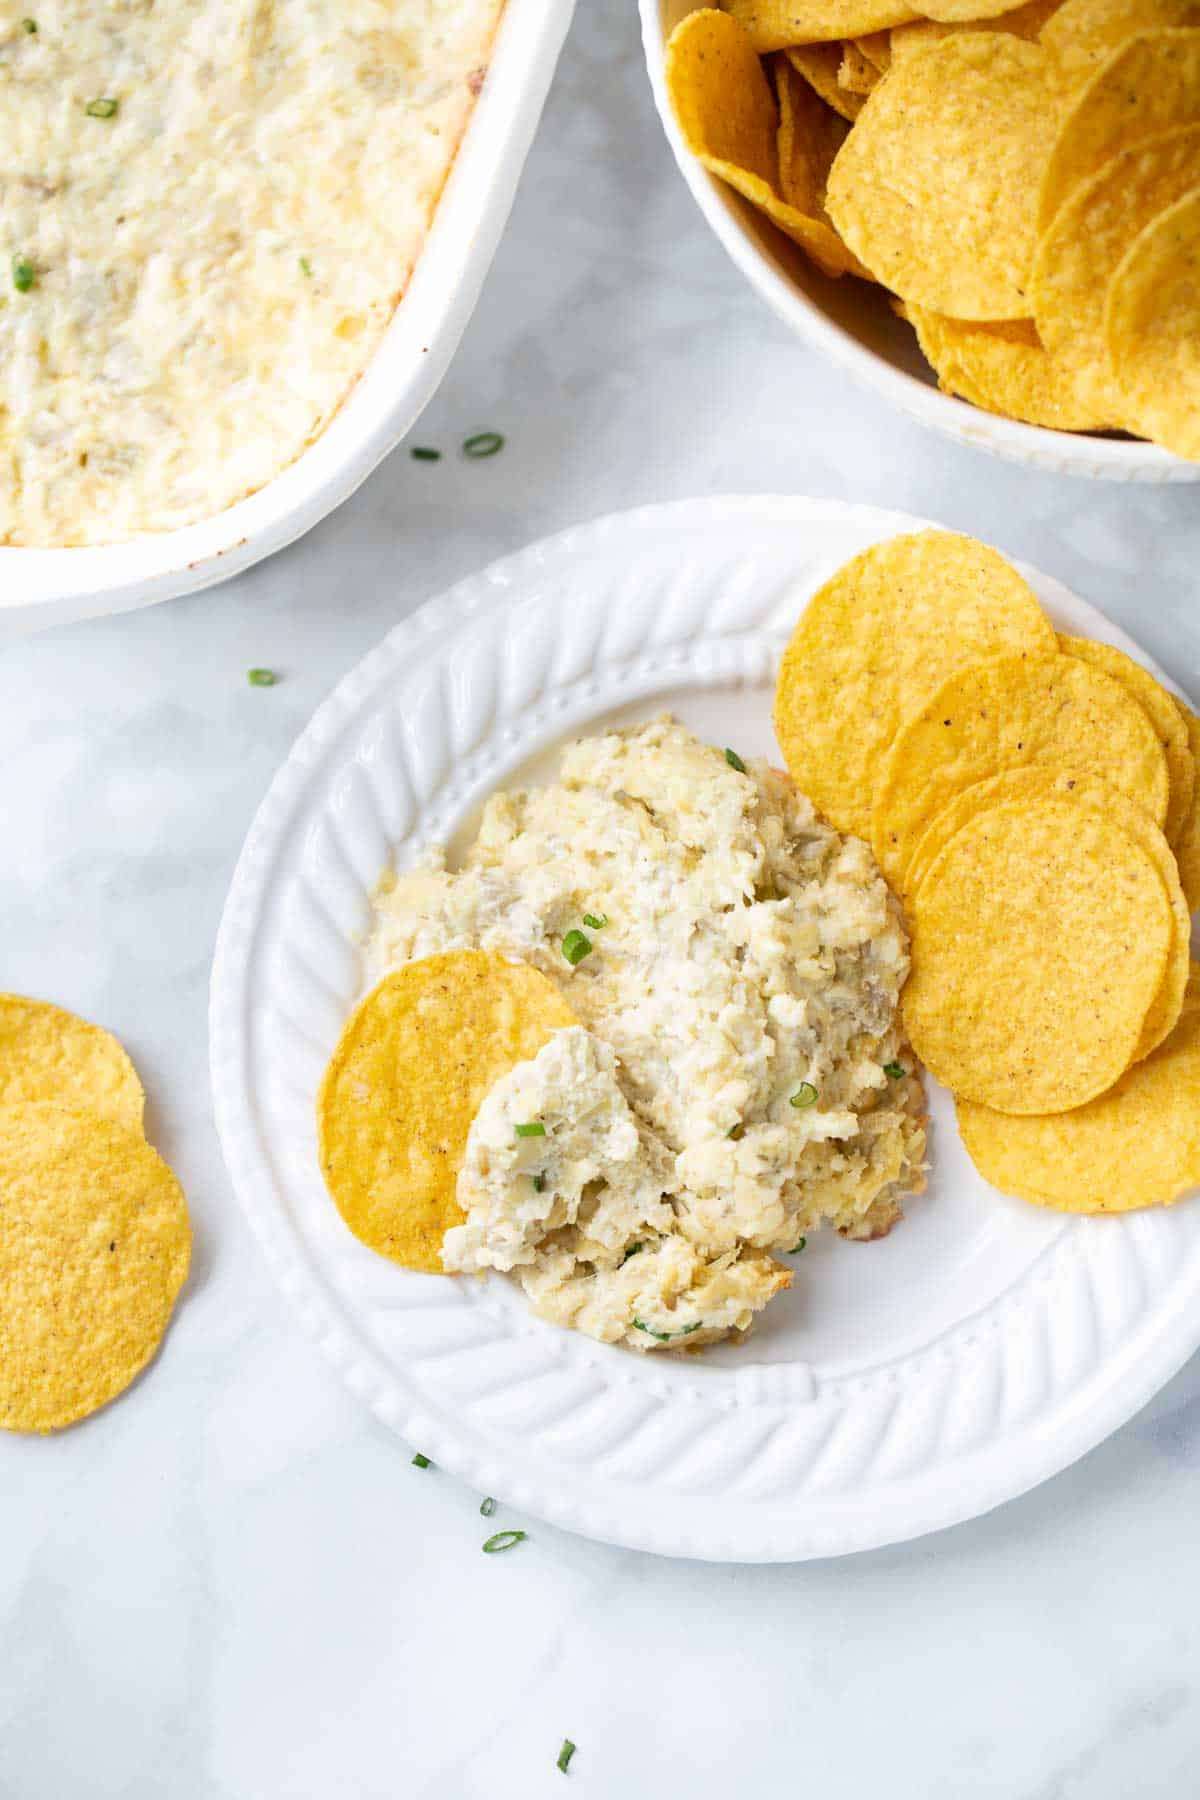 artichoke dip on white plate with tortilla chips for serving